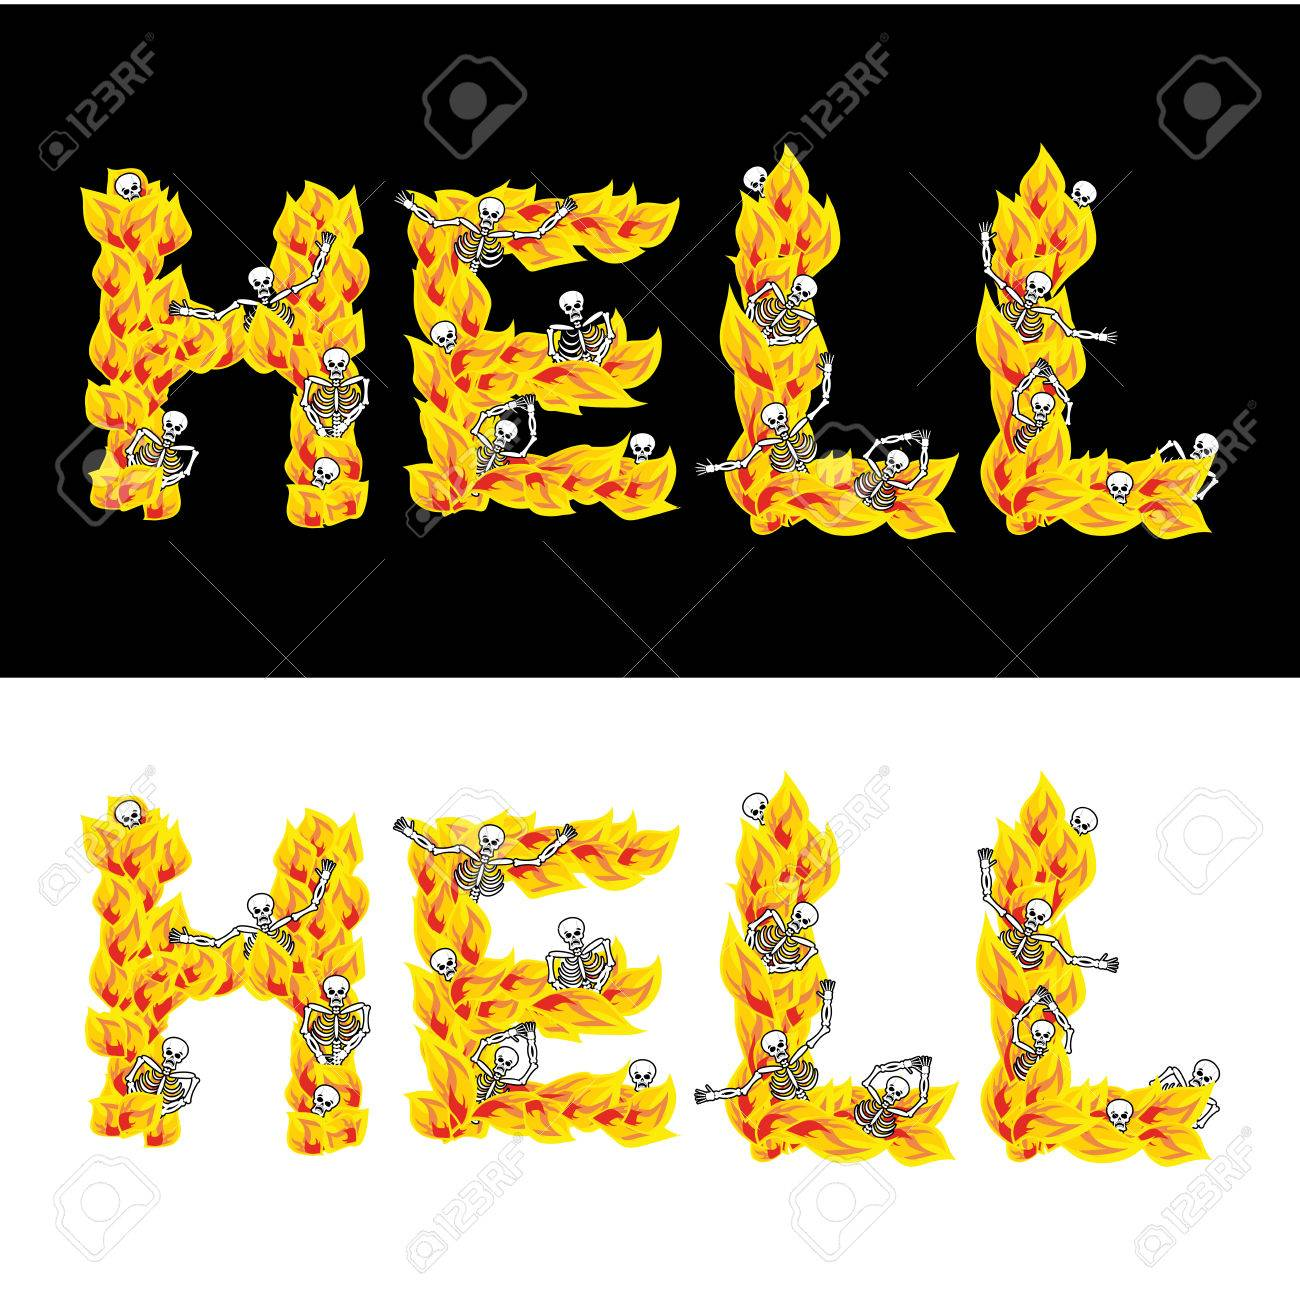 Hell text fire letters skeletons in inferno sinners in gehennal hell text fire letters skeletons in inferno sinners in gehennal satanic symbol buycottarizona Images